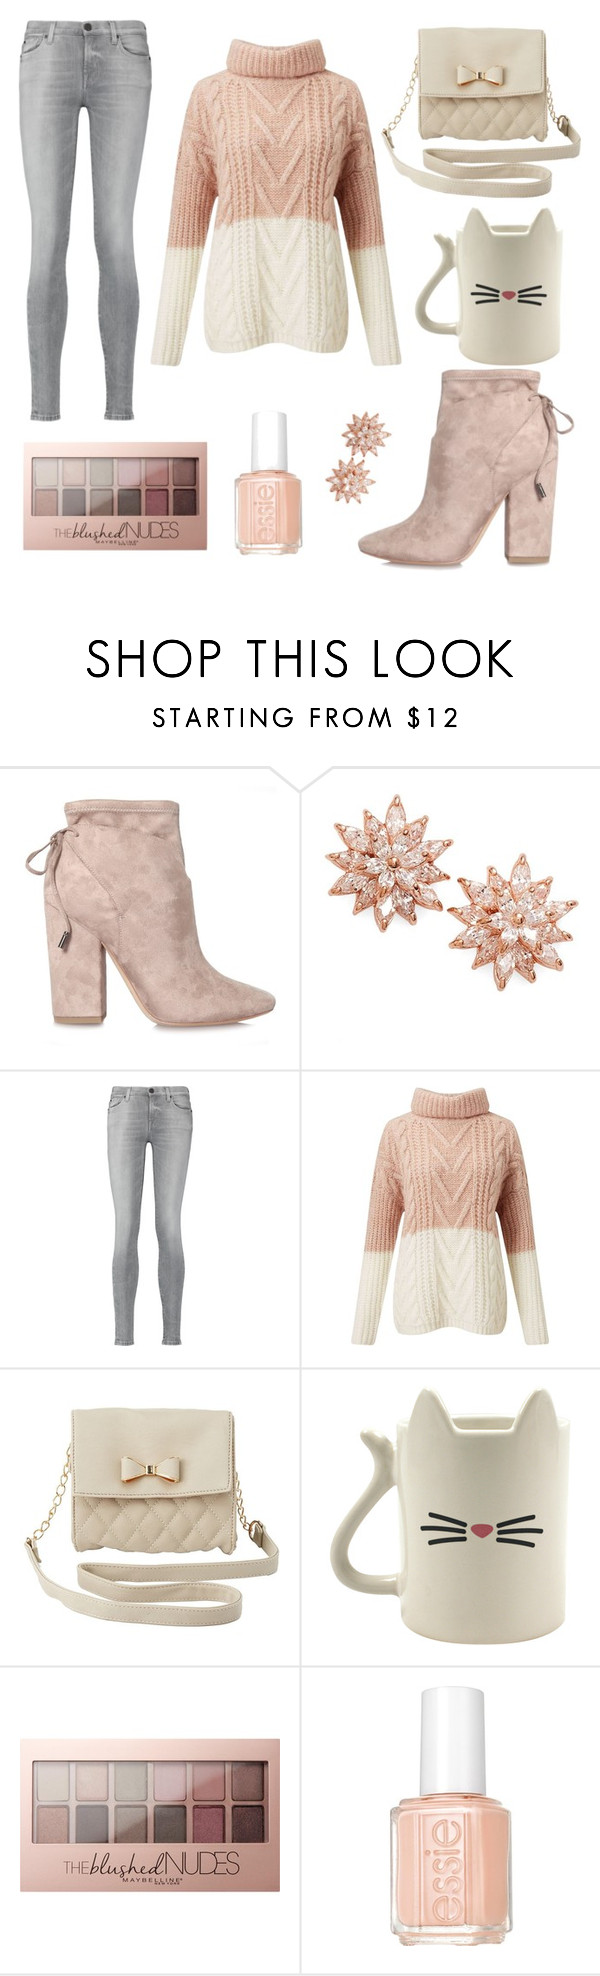 """Design 001"" by kaitlynrose50 ❤ liked on Polyvore featuring Kendall + Kylie, Nina, 7 For All Mankind, Miss Selfridge, Charlotte Russe, Maybelline and Essie"